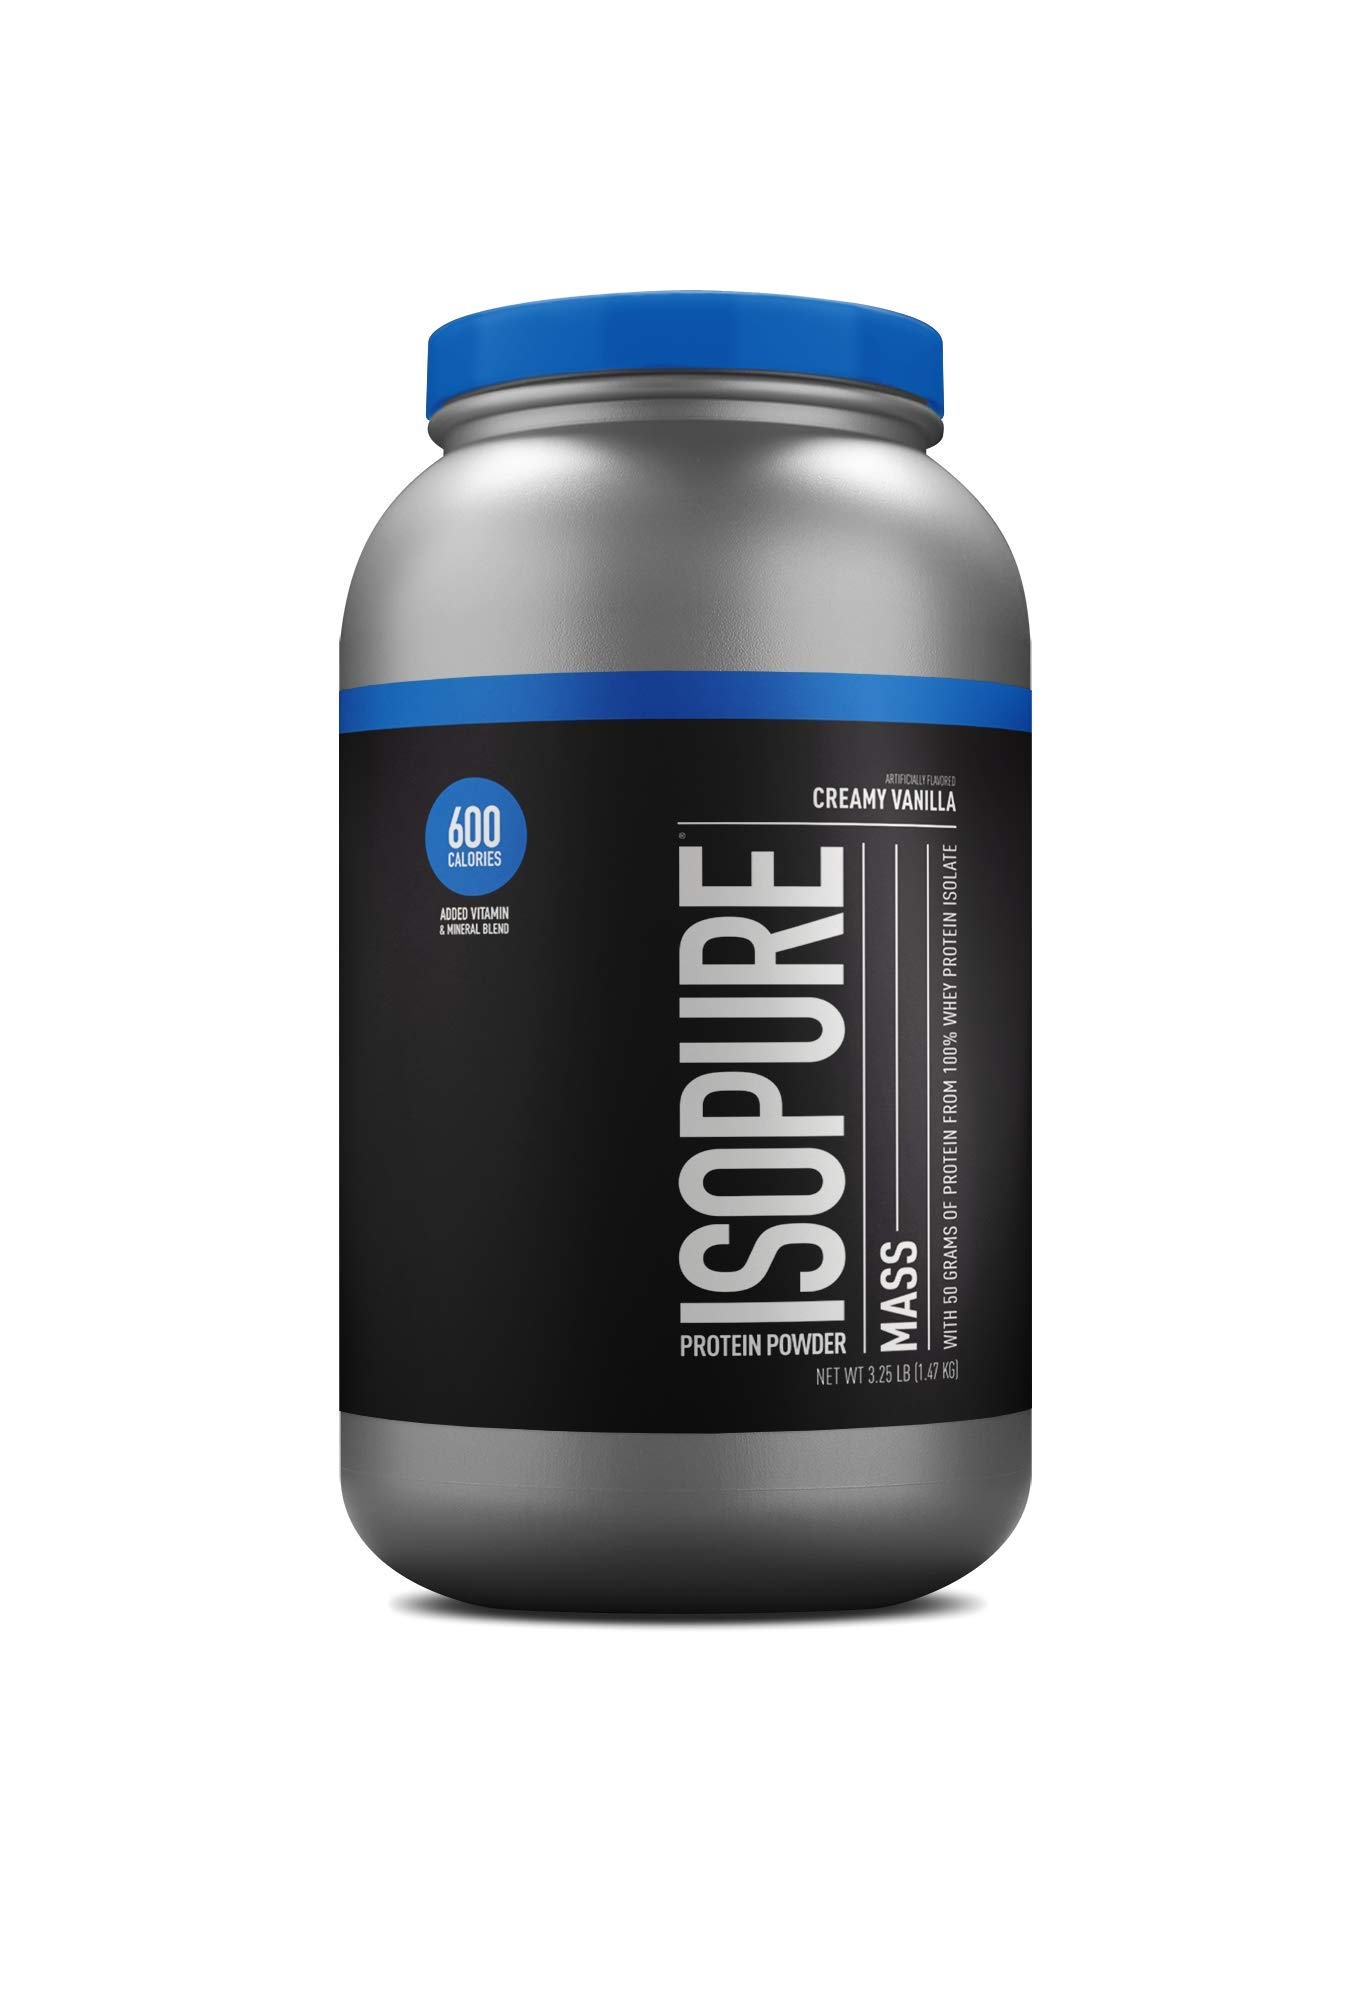 Isopure Mass Protein, Vitamin C and Zinc for Immune Support, 50g Protein, 600 Calories, Creamy Vanilla, 3.25-Pound Tub